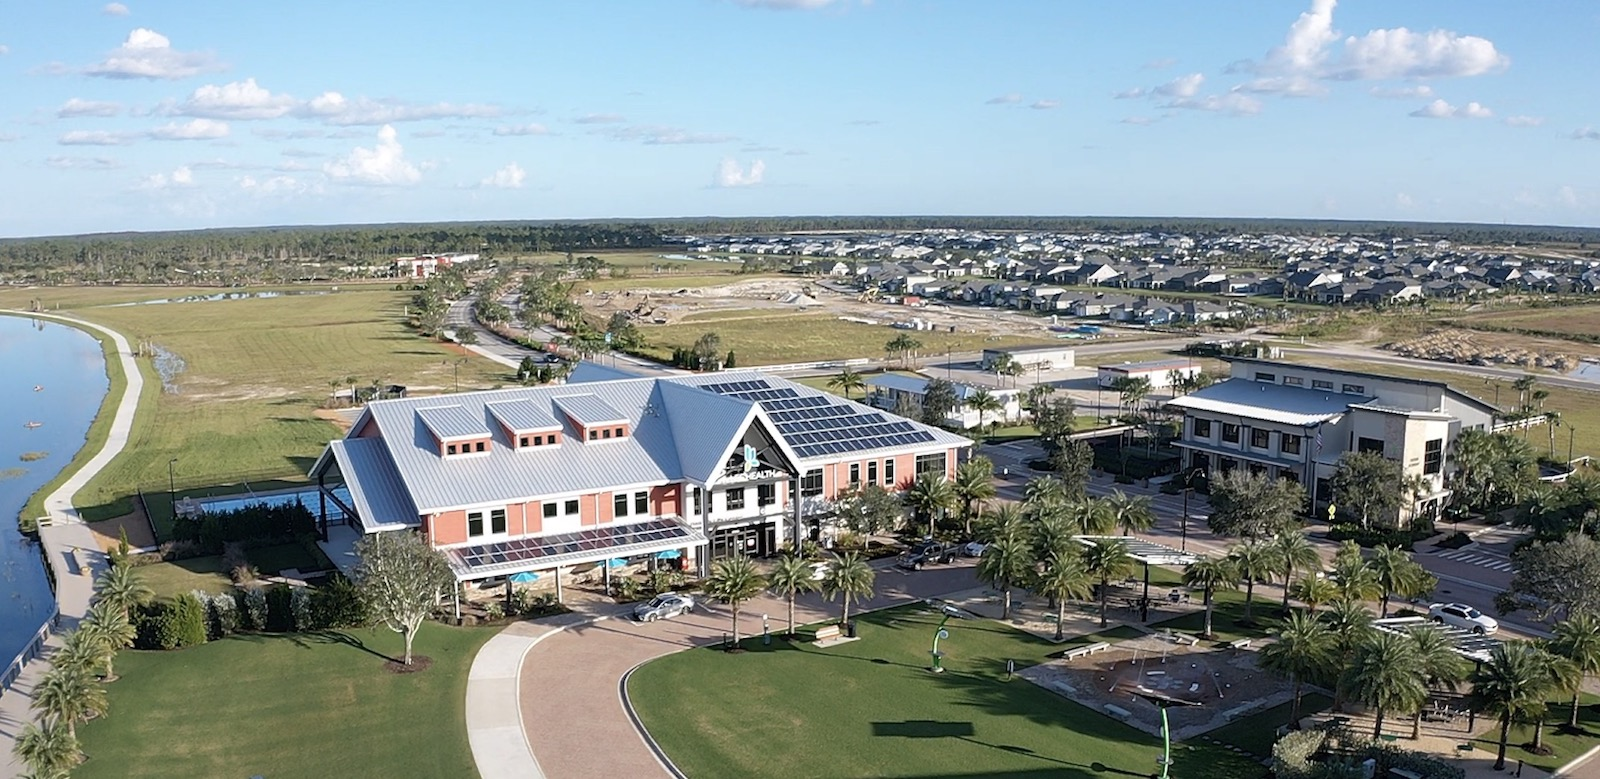 Aerial view of Florida's Babcock Ranch solar energy community